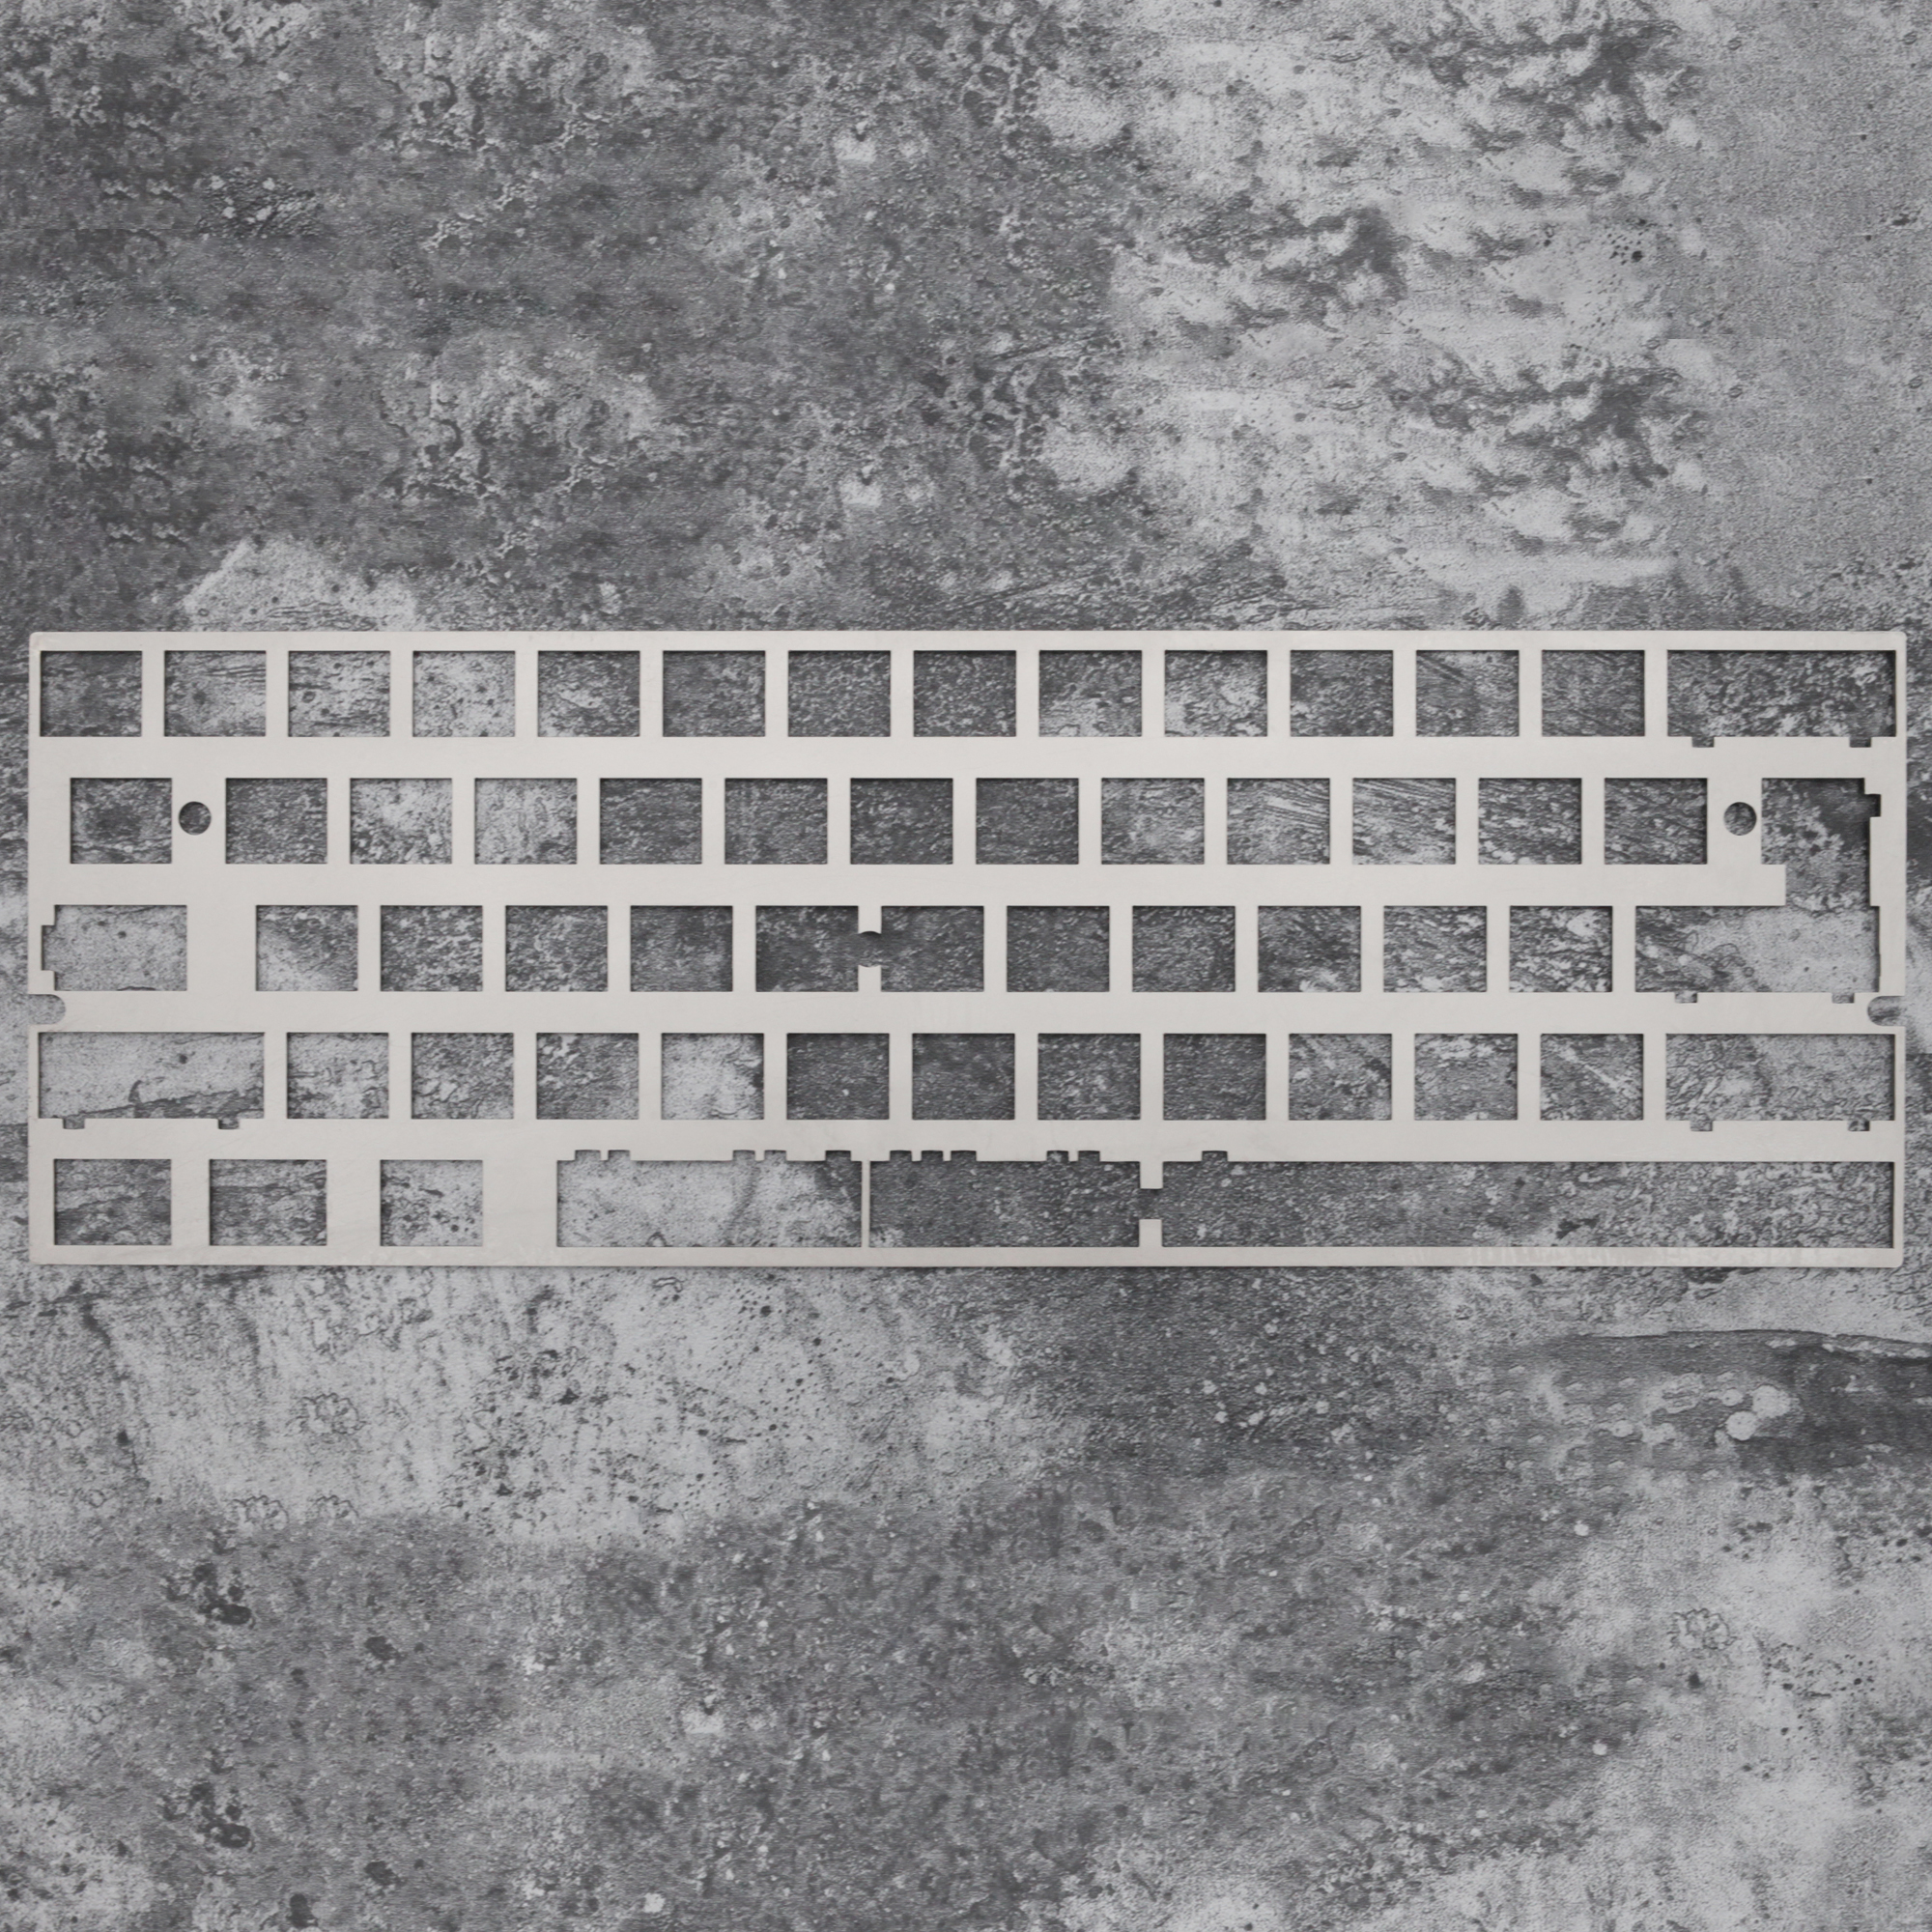 Alps Matias 60% Stainless Steel Plate Mechanical Keyboard Plate Support Xd60 Xd64 2.25u 2u Left Shift Support Kinds Of Layout